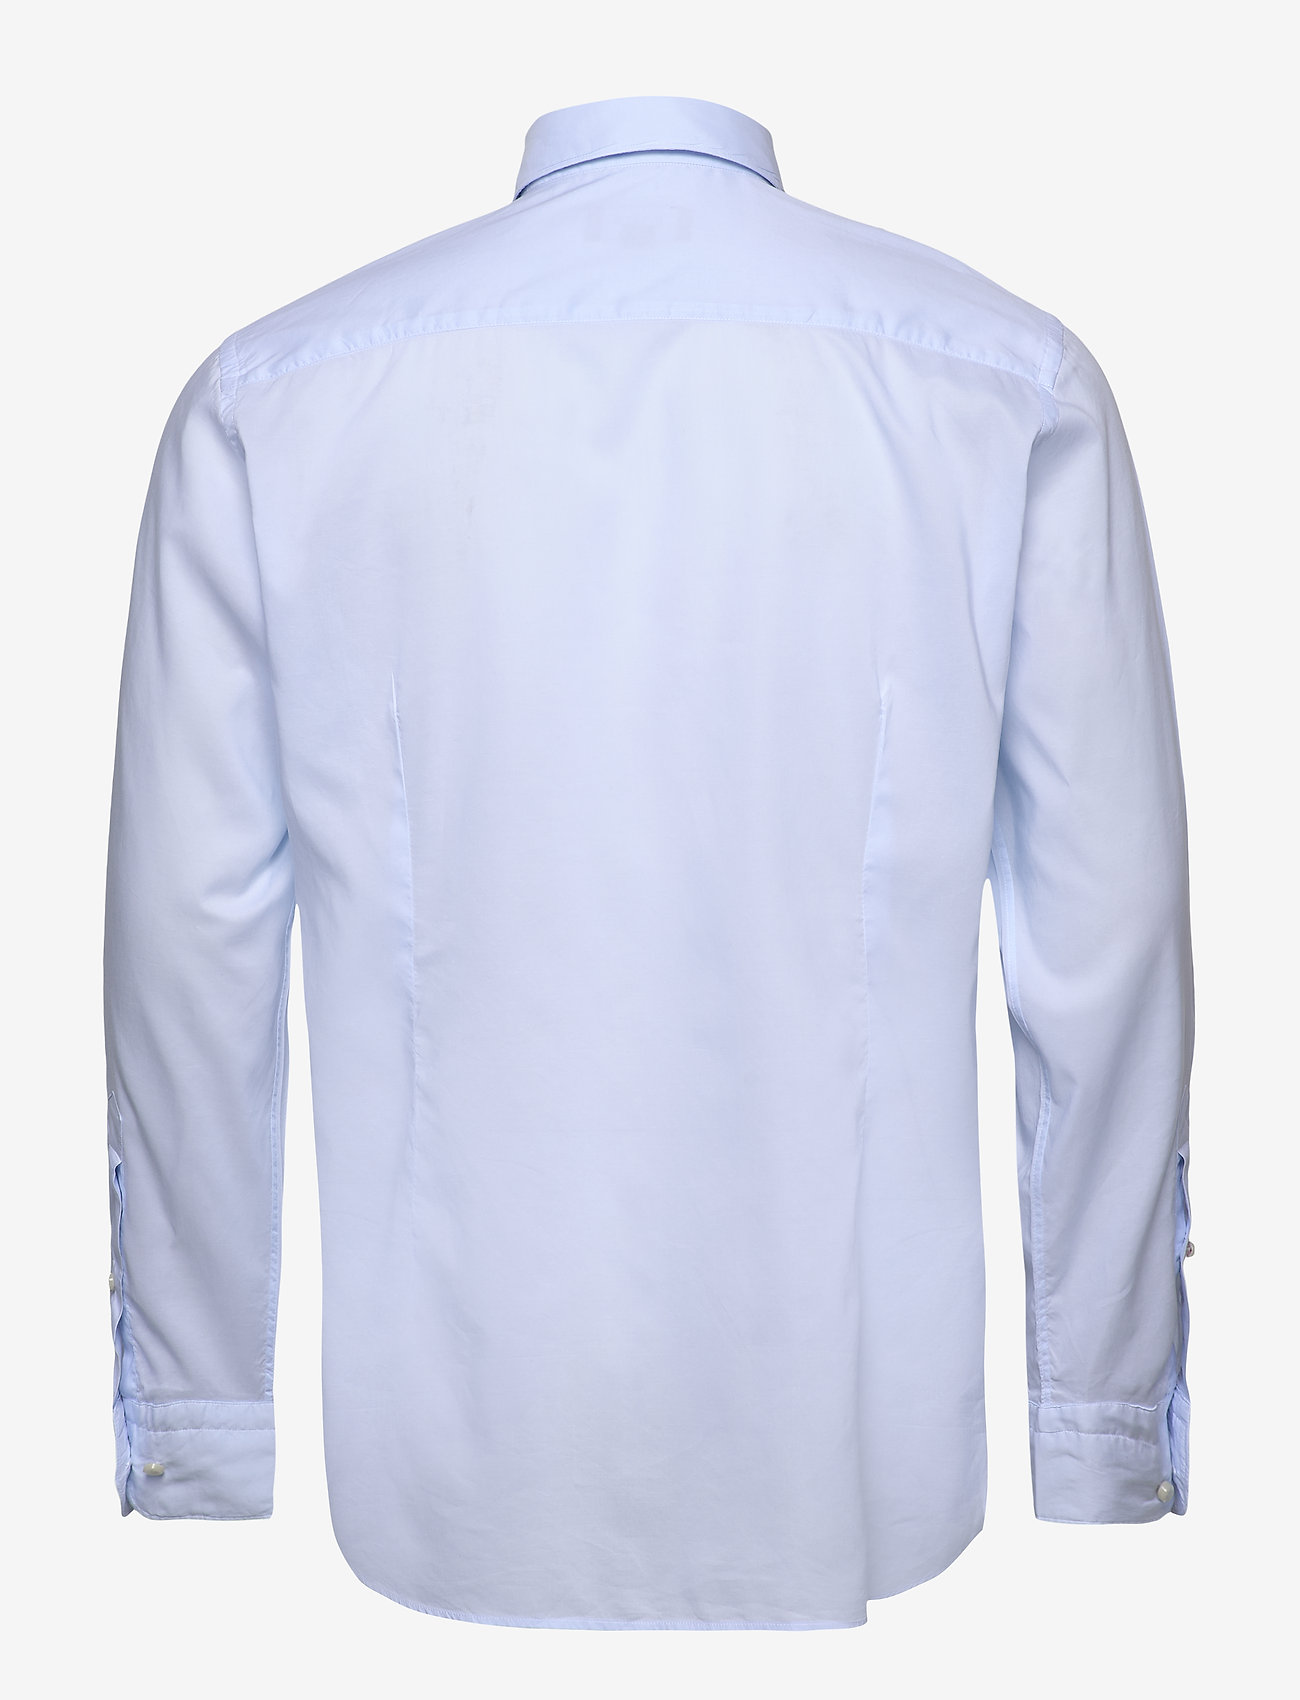 Eton - Micromodal shirt - Contemporary fit - business shirts - blue